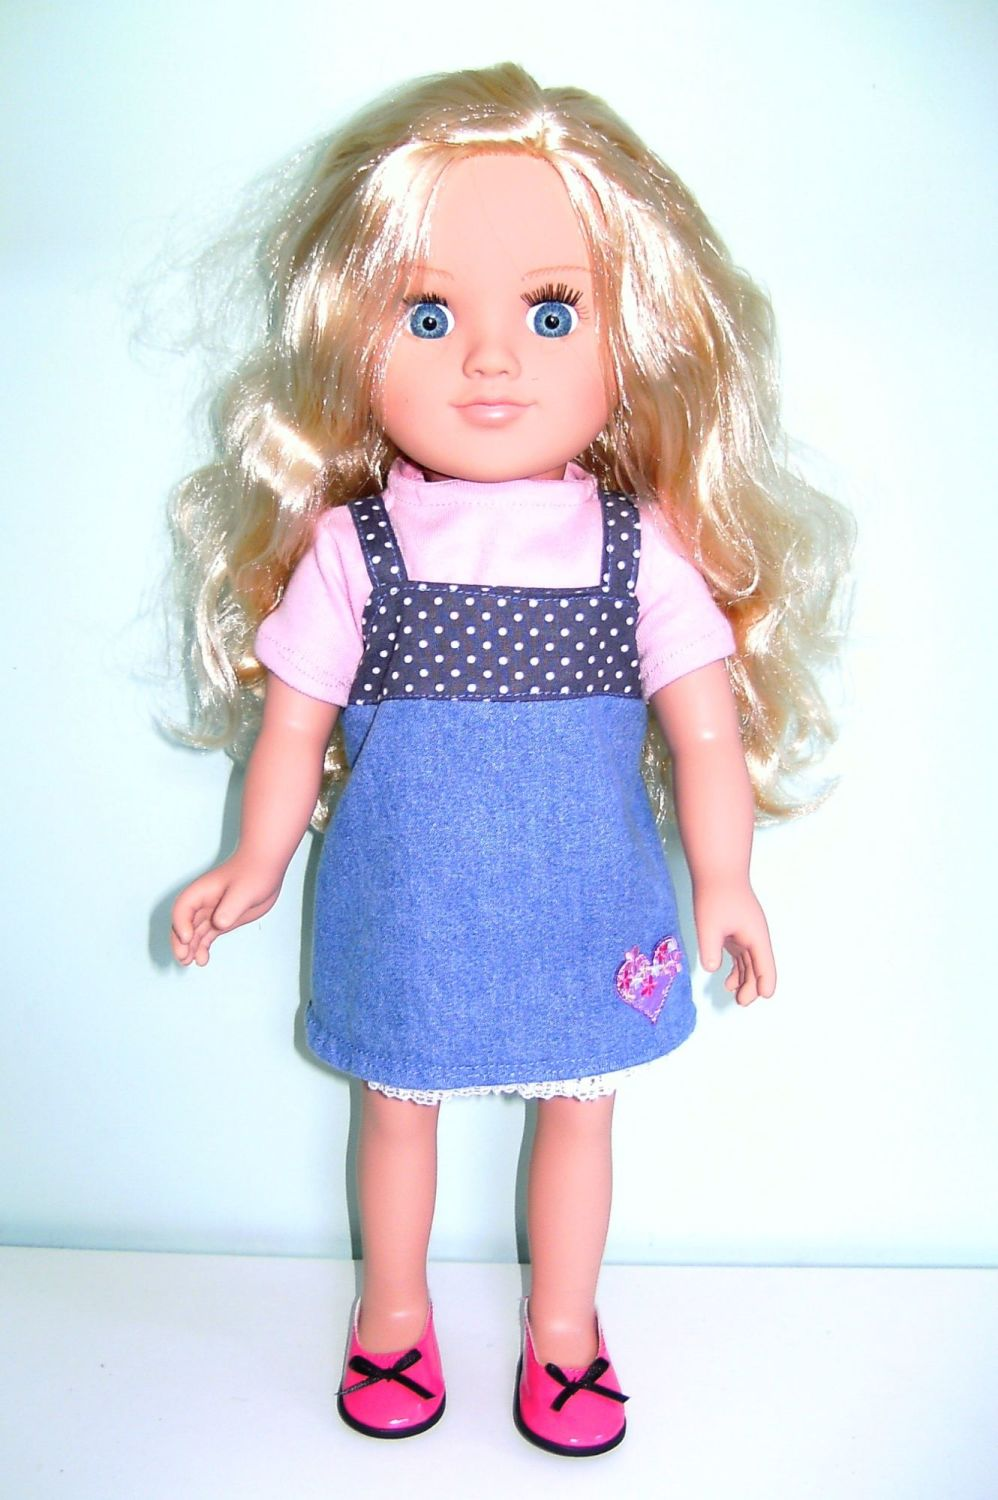 Doll's pinafore dress and tee shirt for 18 inch Sindy doll